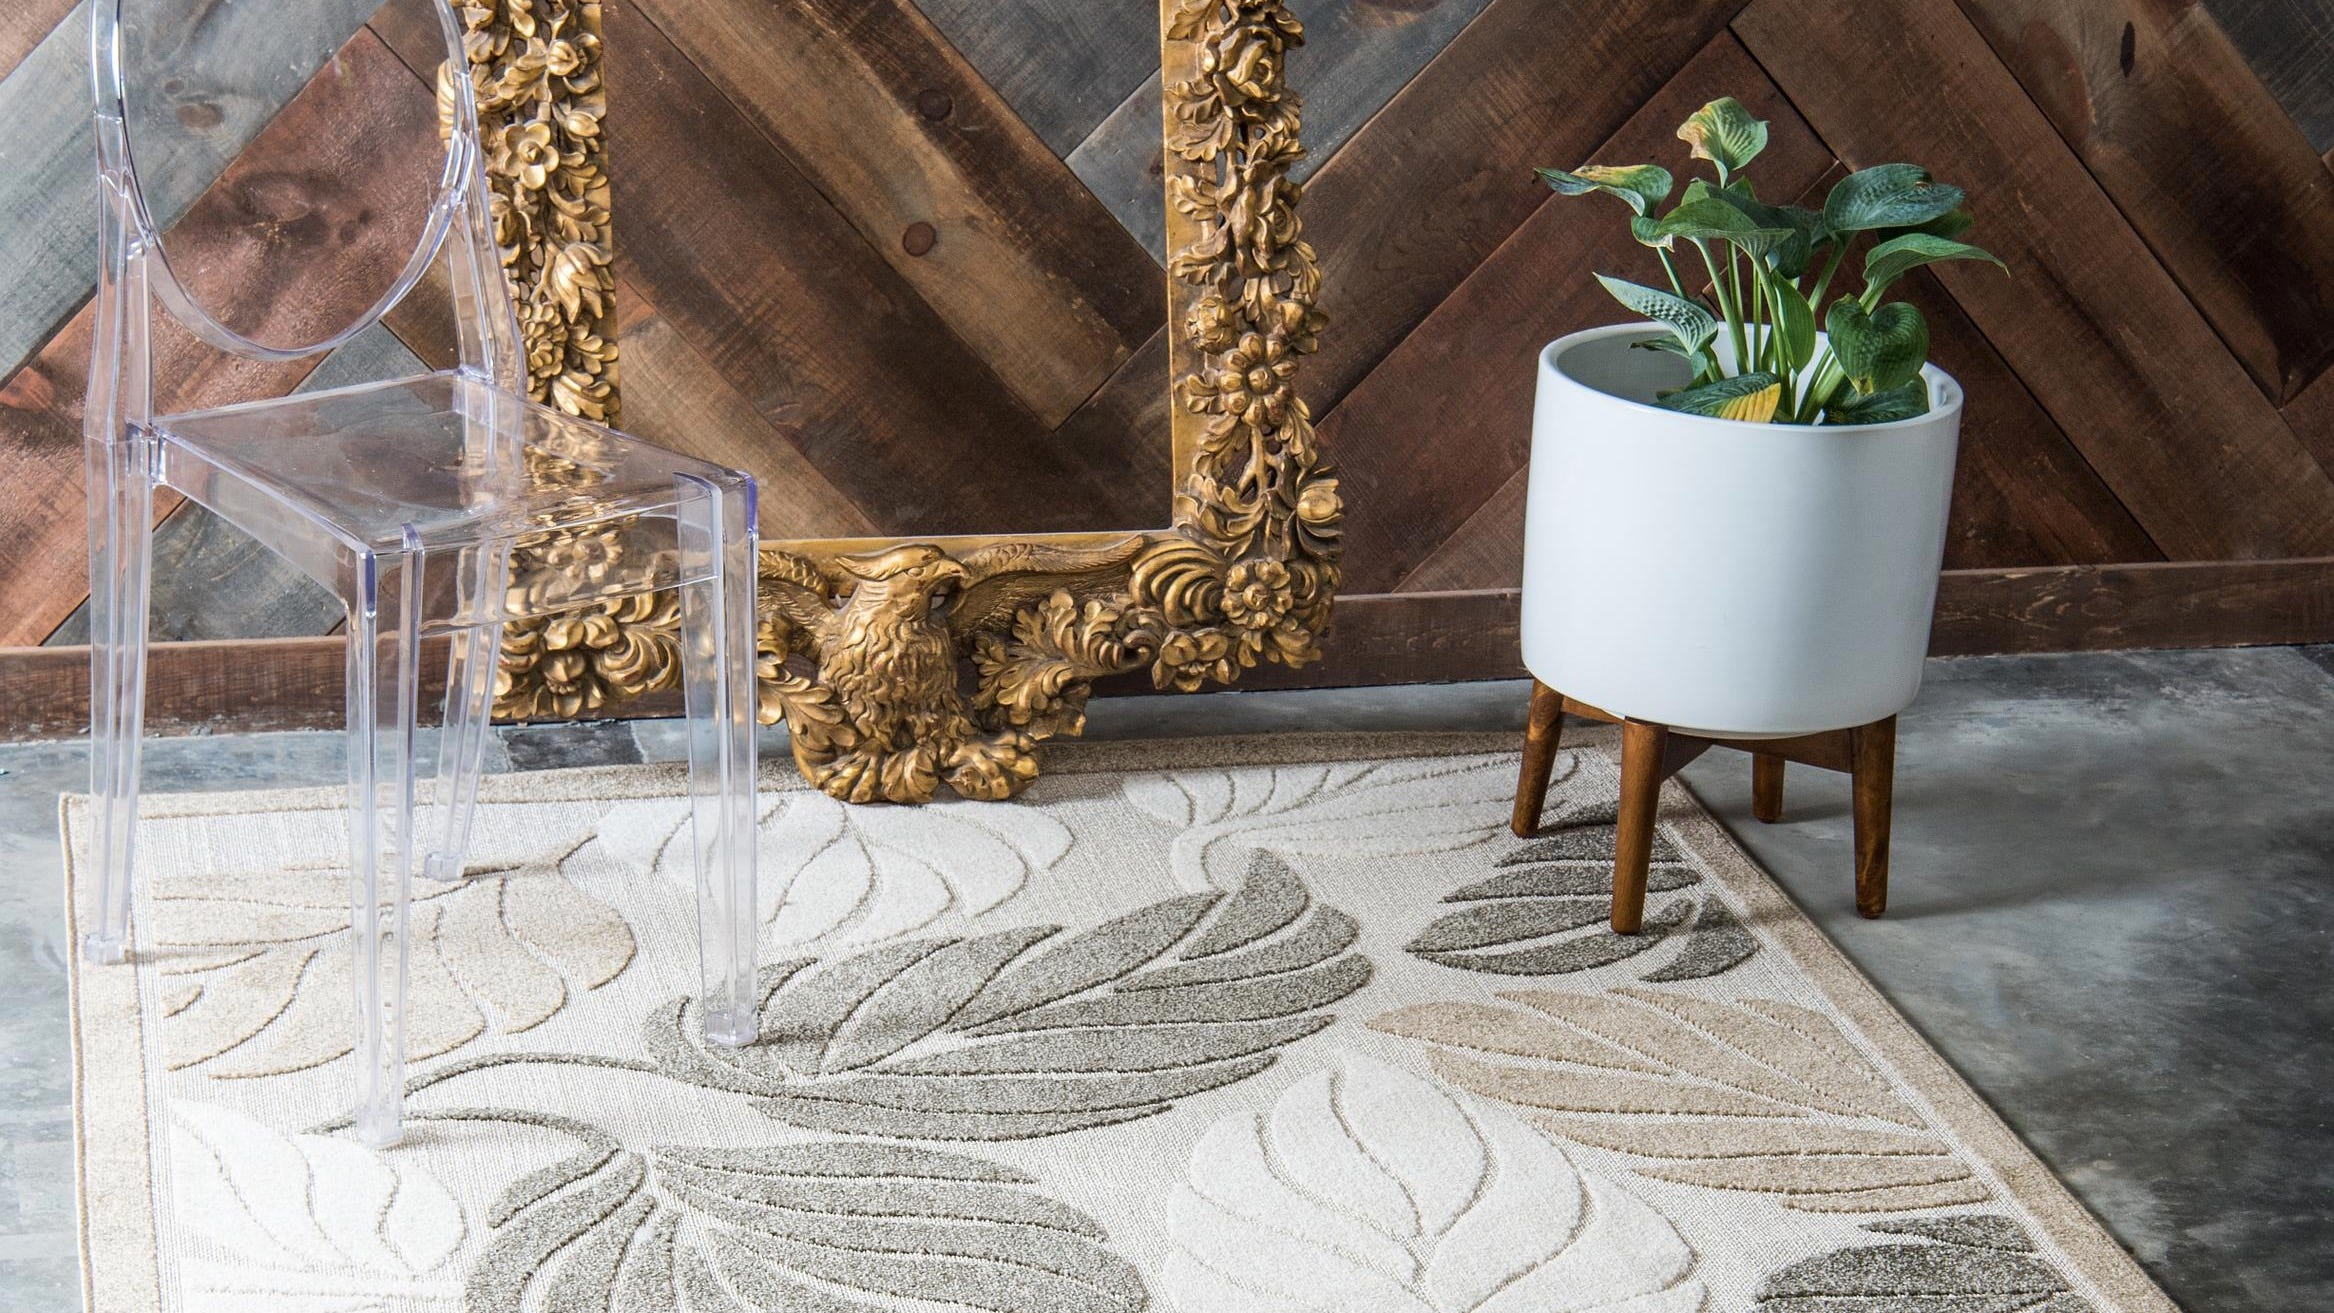 A leaf-print rug under a potted plant, chair, and wall mirror.